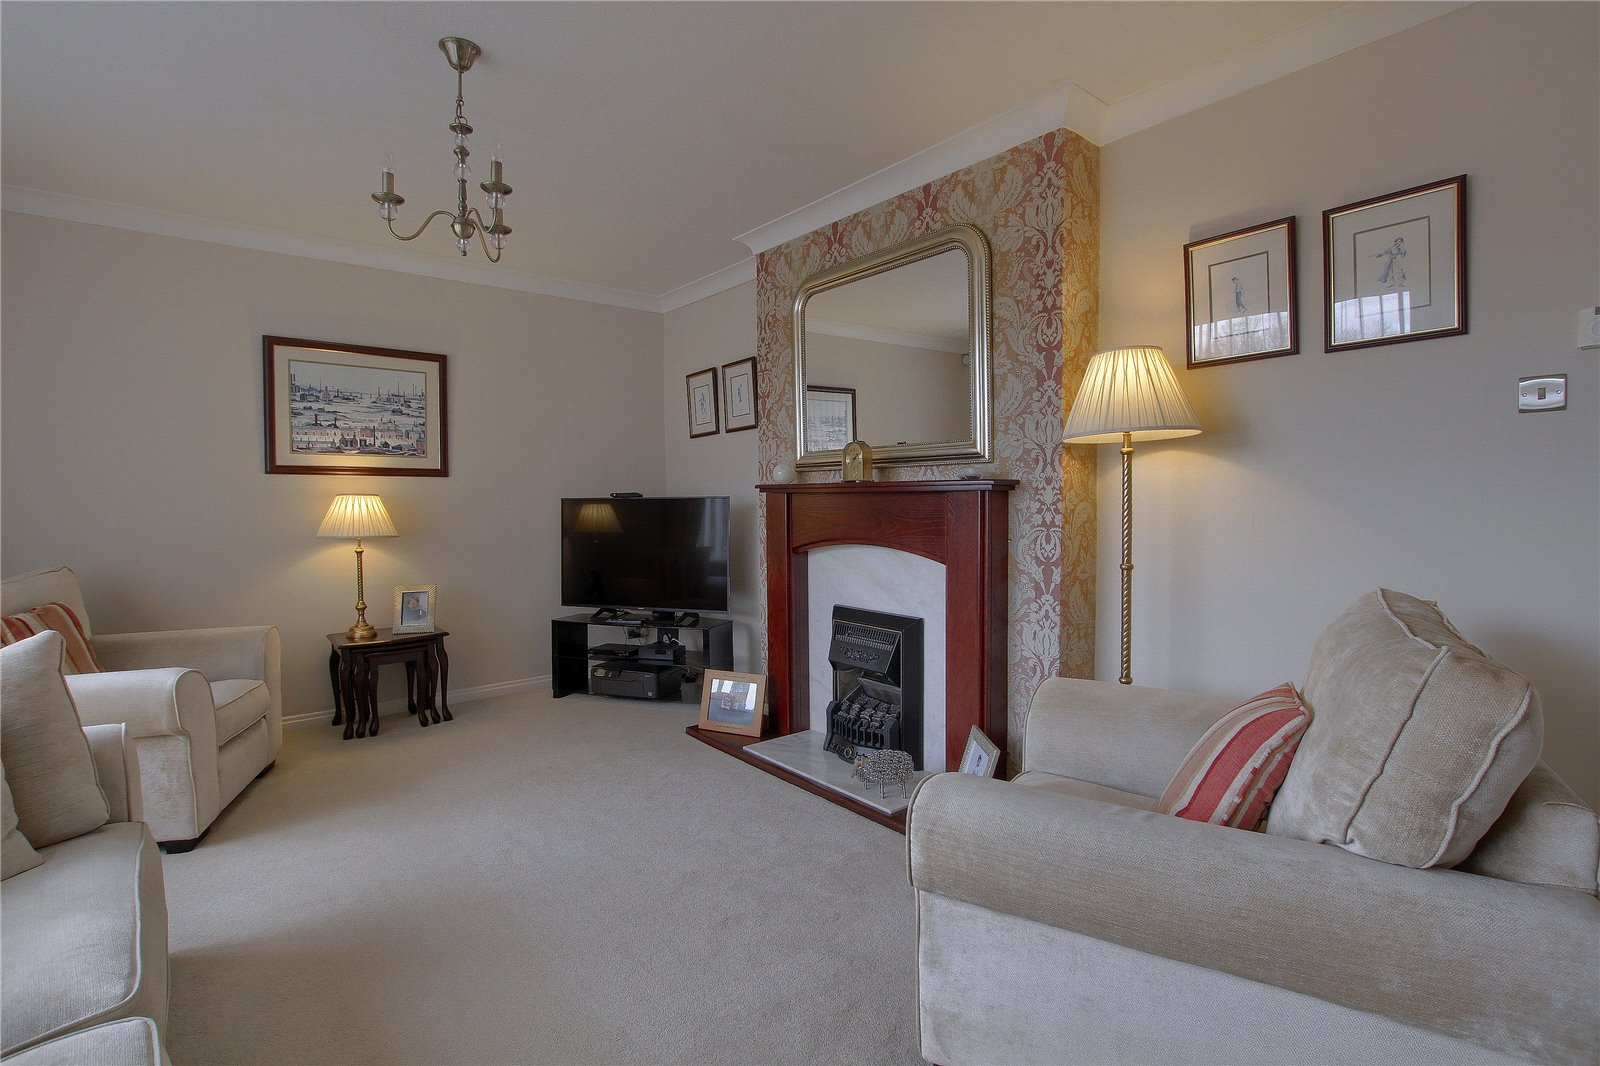 4 bed house for sale in Oldford Crescent, Acklam  - Property Image 7